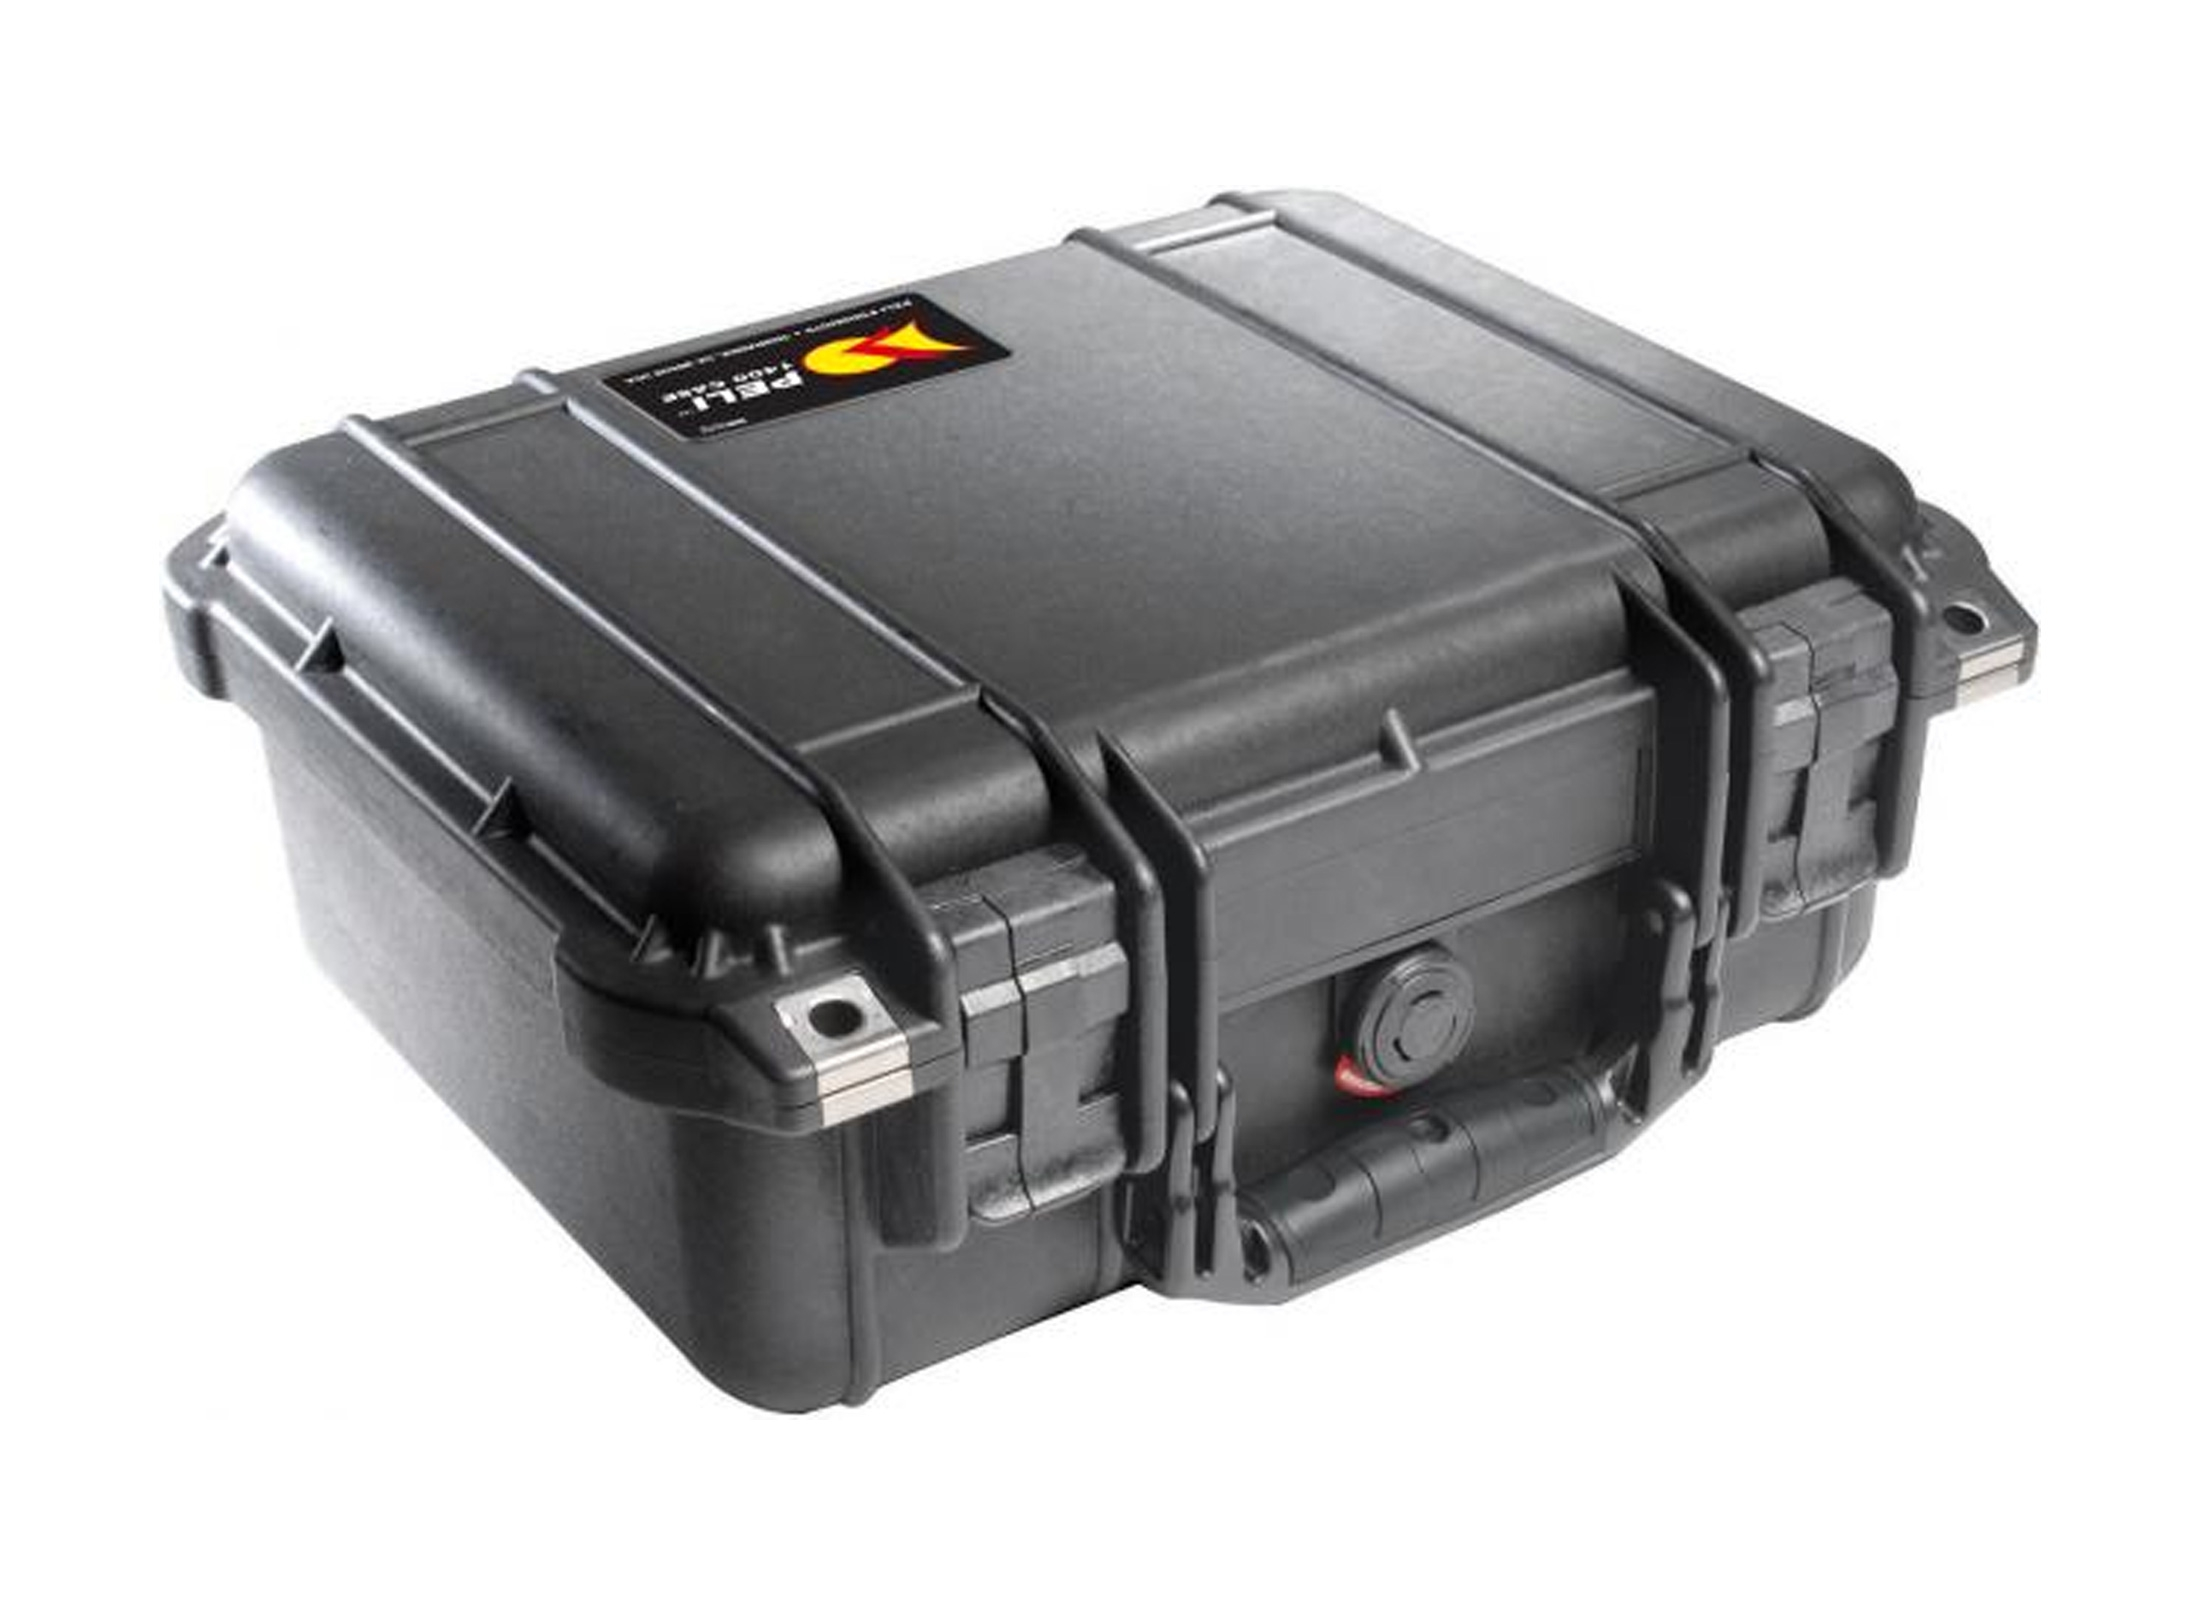 Noppenschaumstoff Peli 1400 000 110e Equipment Case Plastic Waterproof Inside Dimension 300x225x132mm Incl Foam